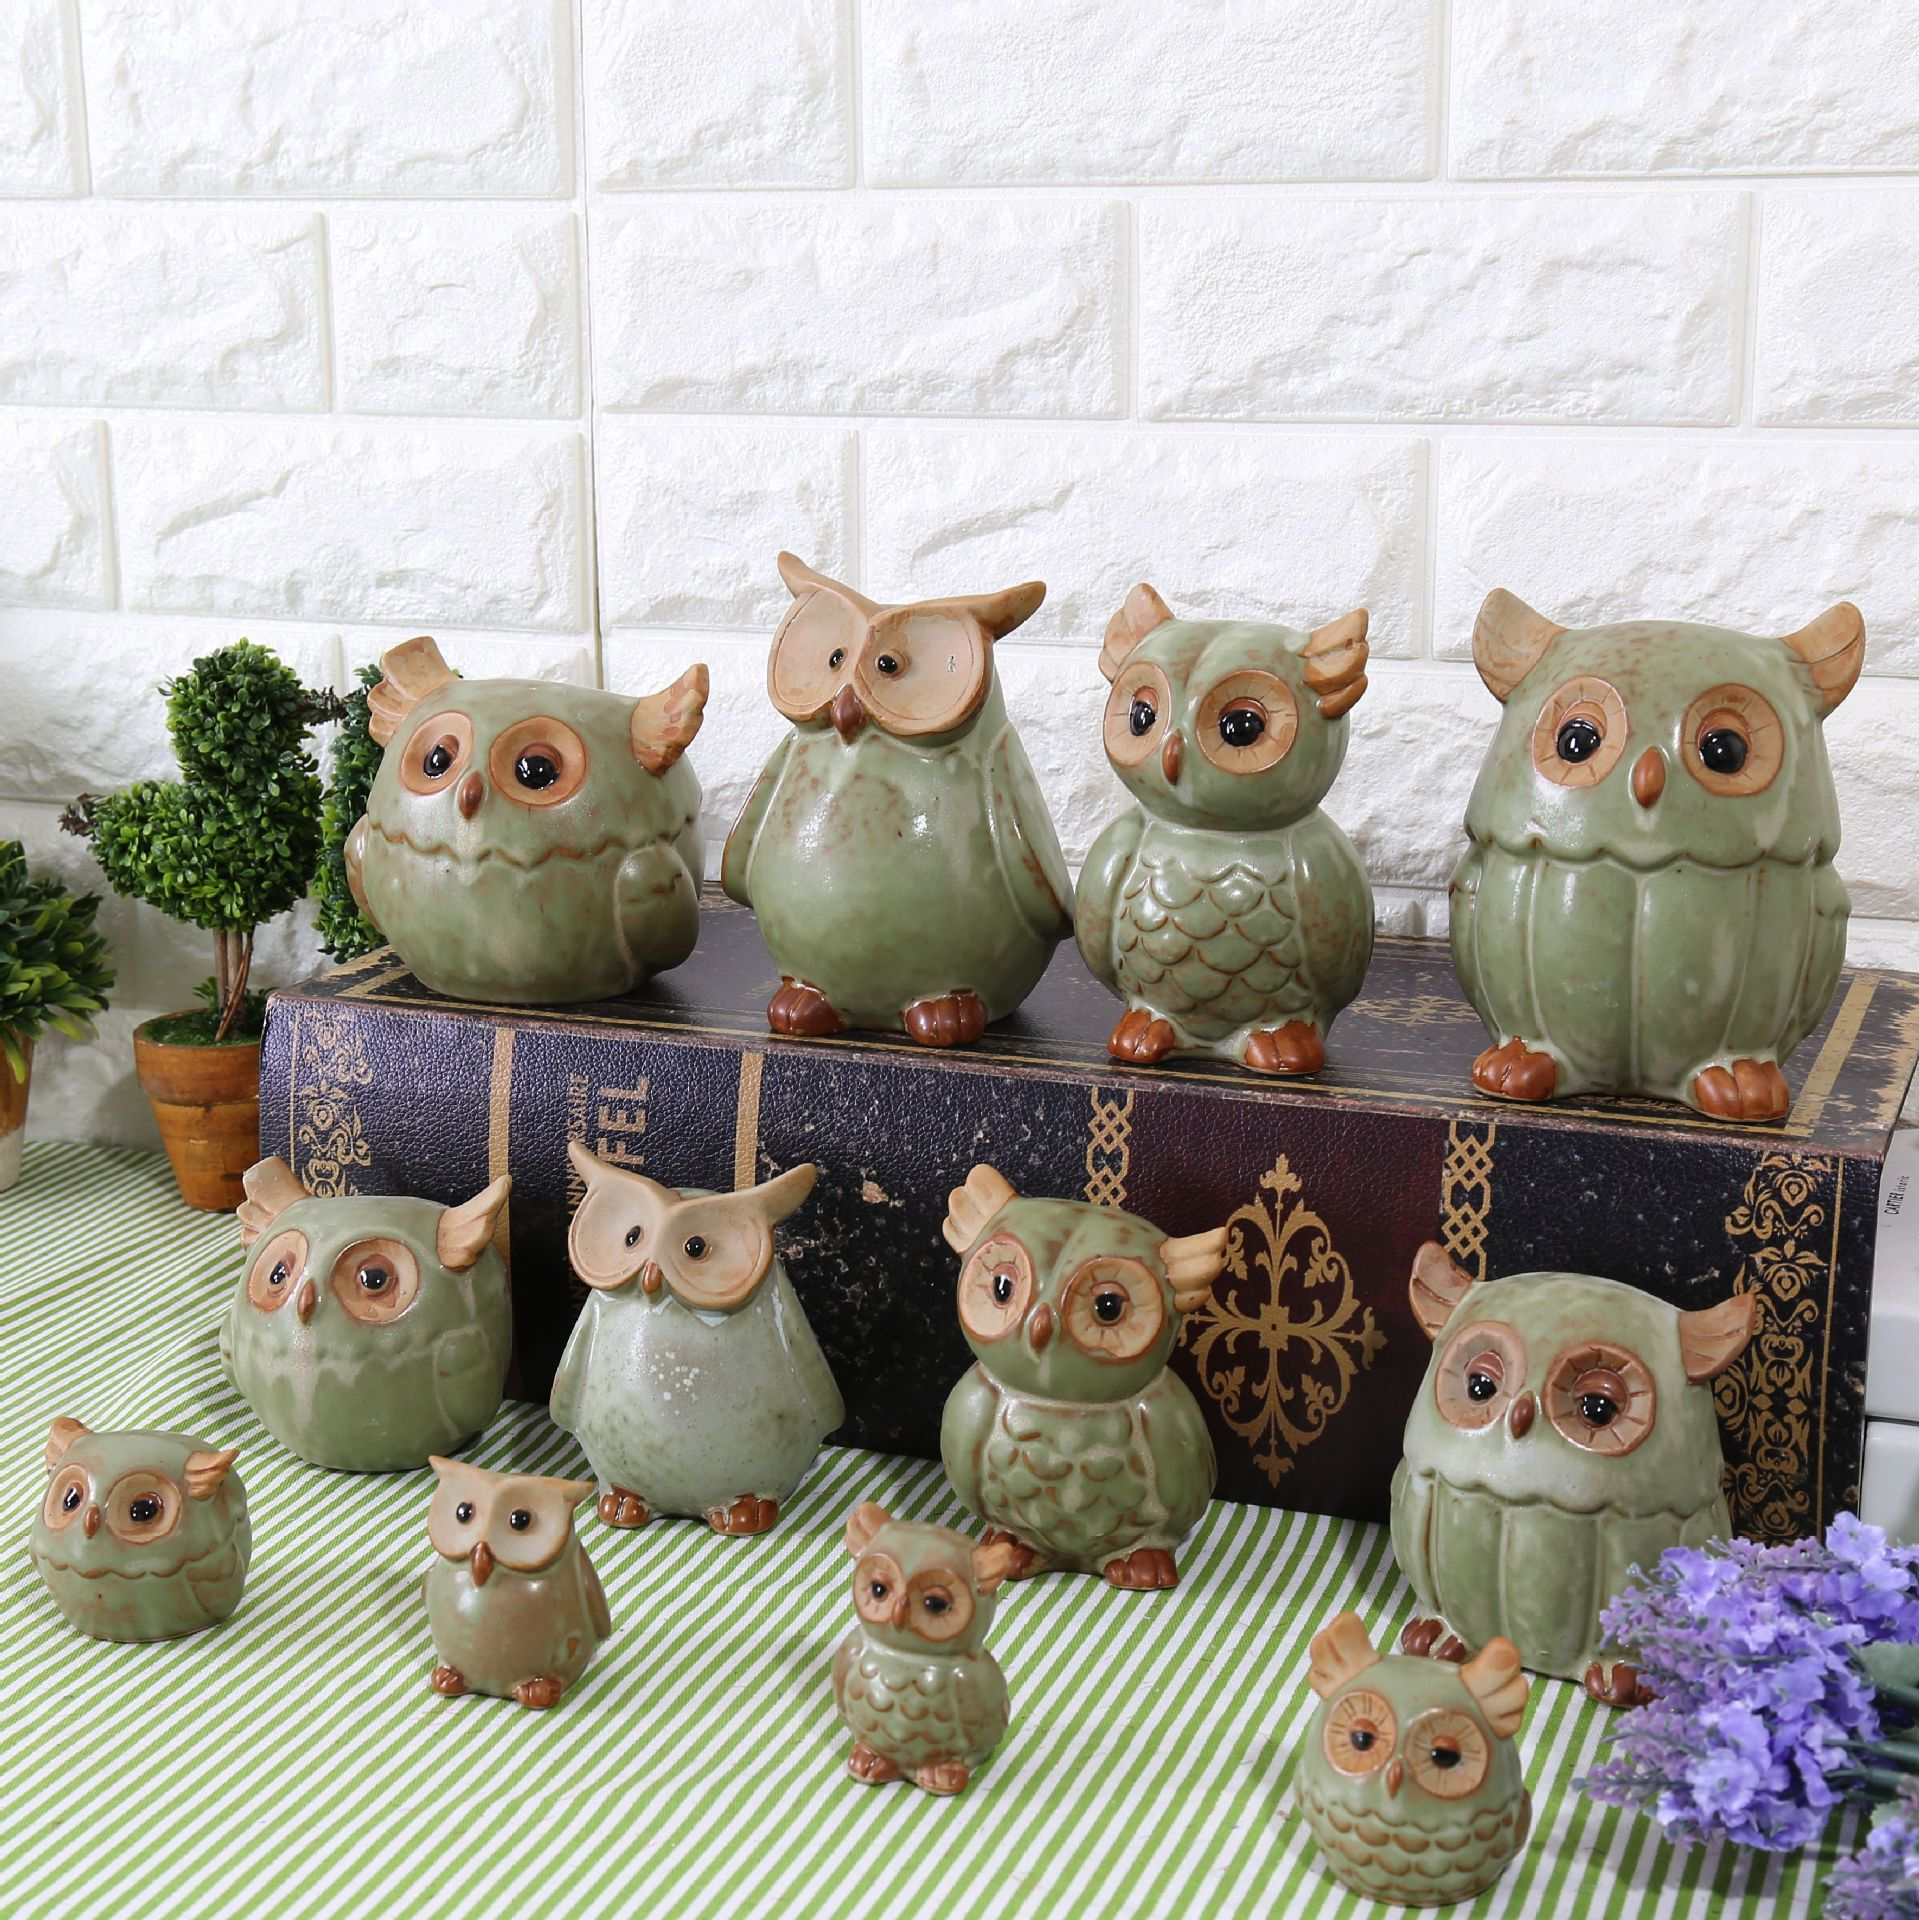 Popular Ceramic Owl Buy Cheap Ceramic Owl Lots From China Ceramic Owl Suppliers On